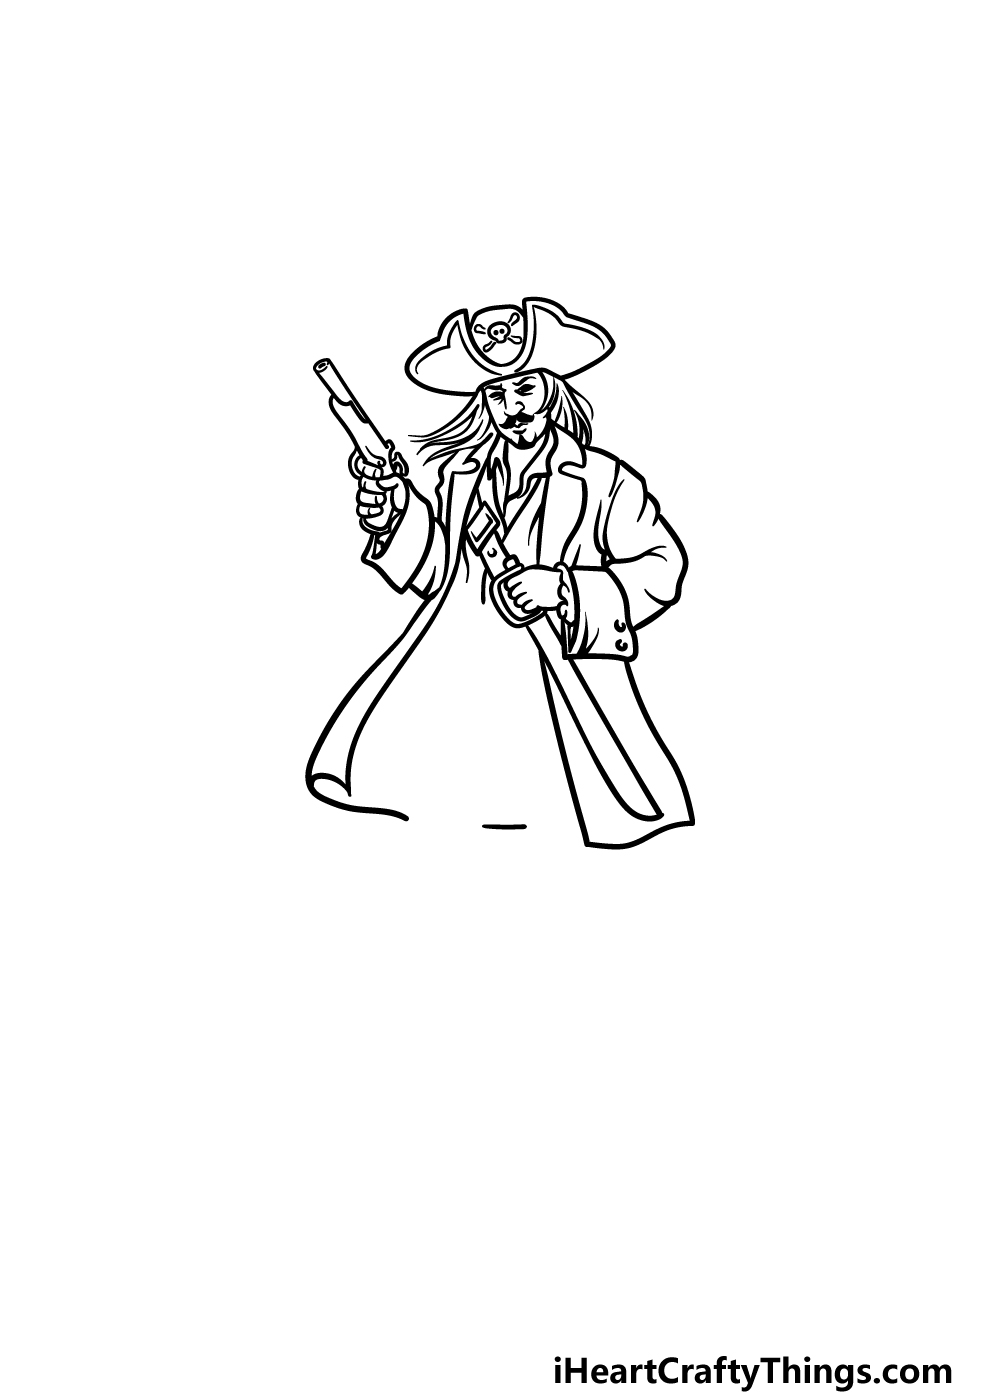 drawing a pirate step 4